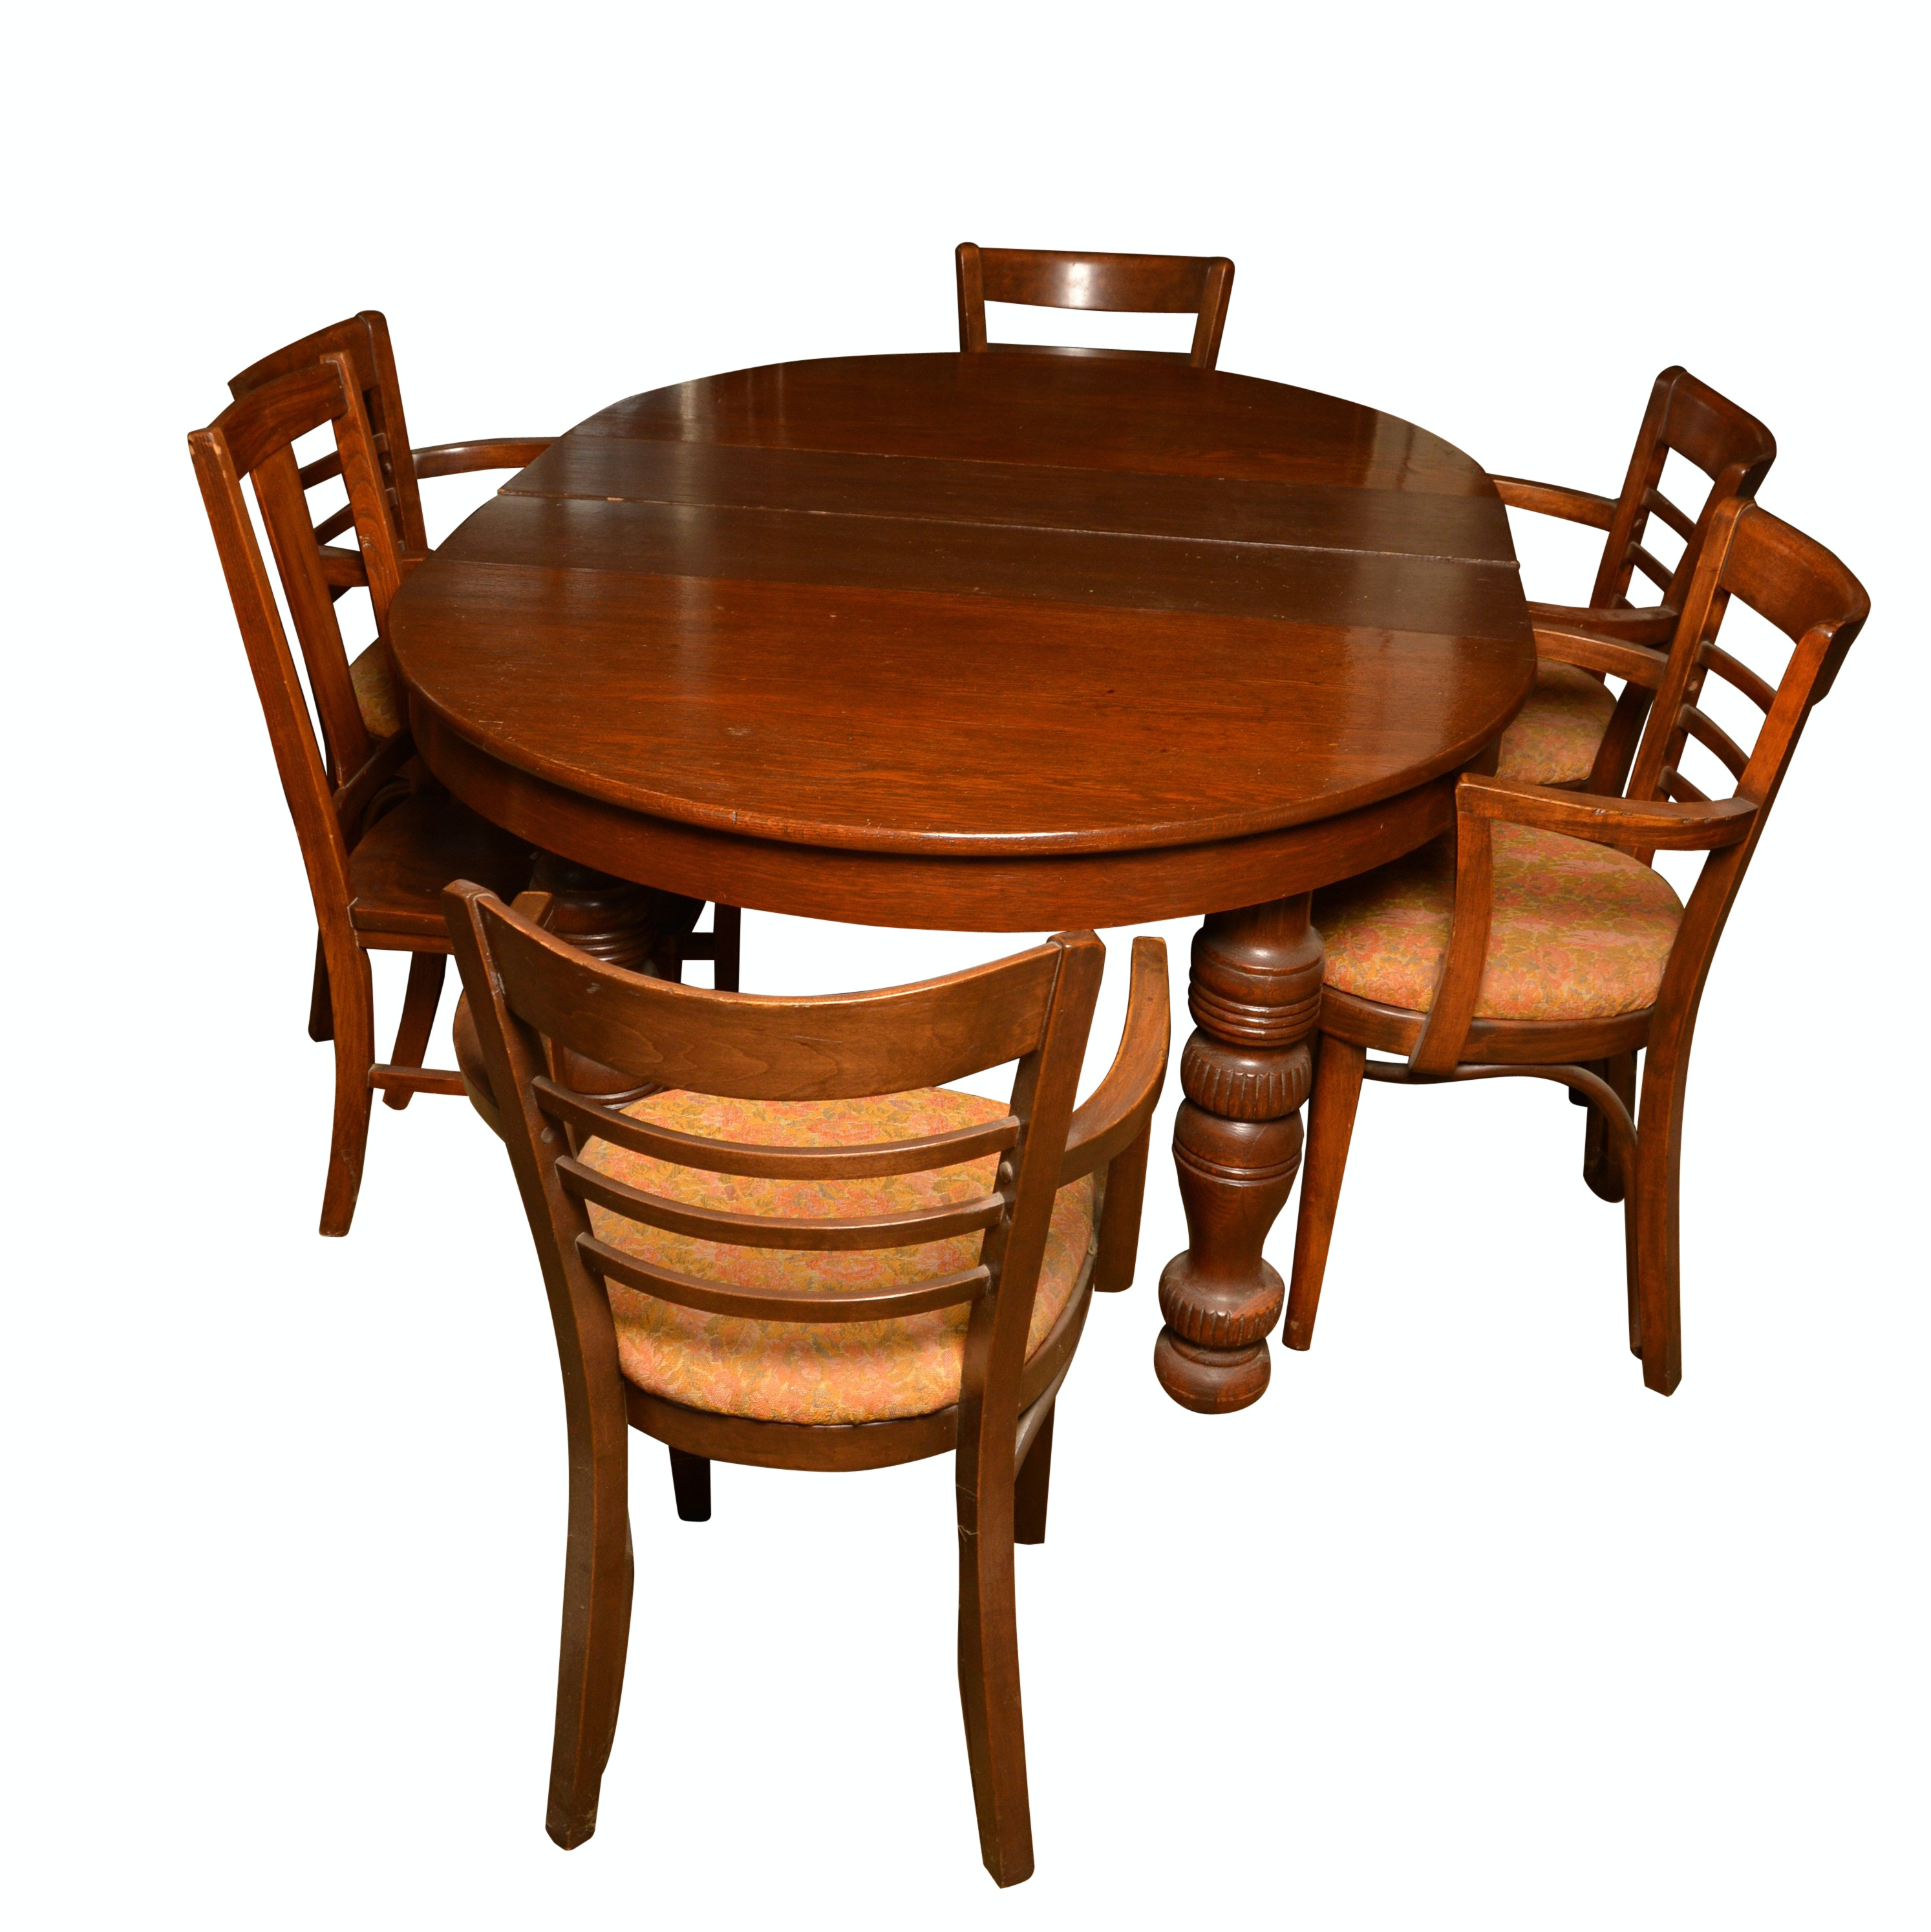 Vintage Dining Table with Dining Chairs